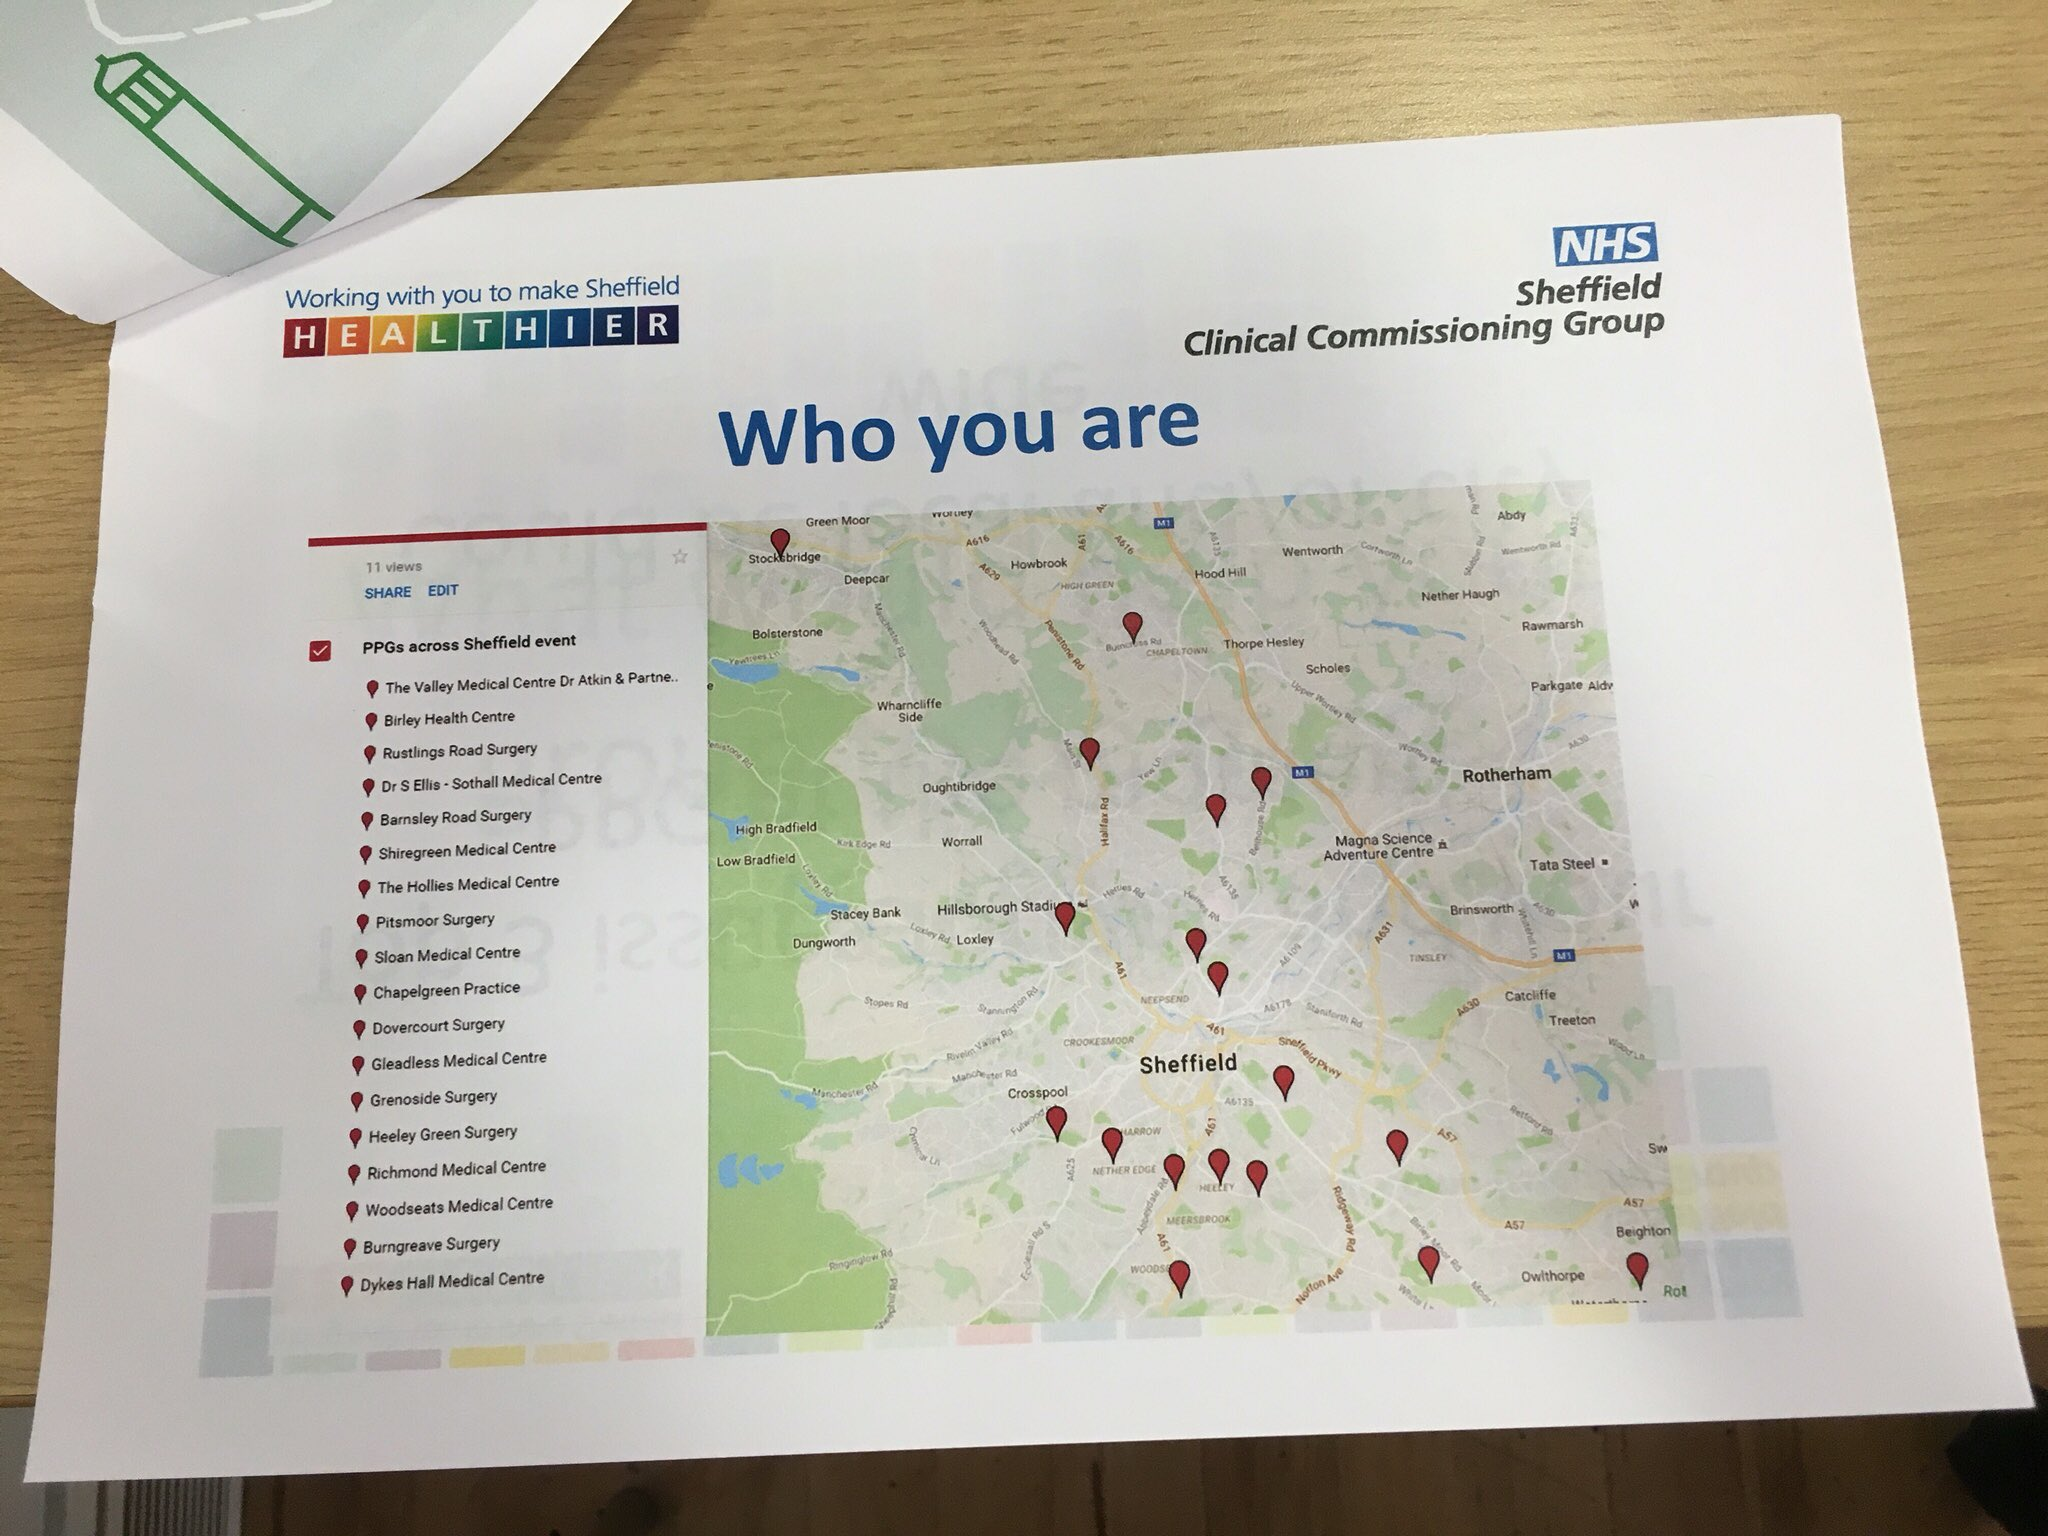 We're welcomed by a wide variety of PPGs from across Sheffield #PPGsheffield https://t.co/jwaQbW9S2B